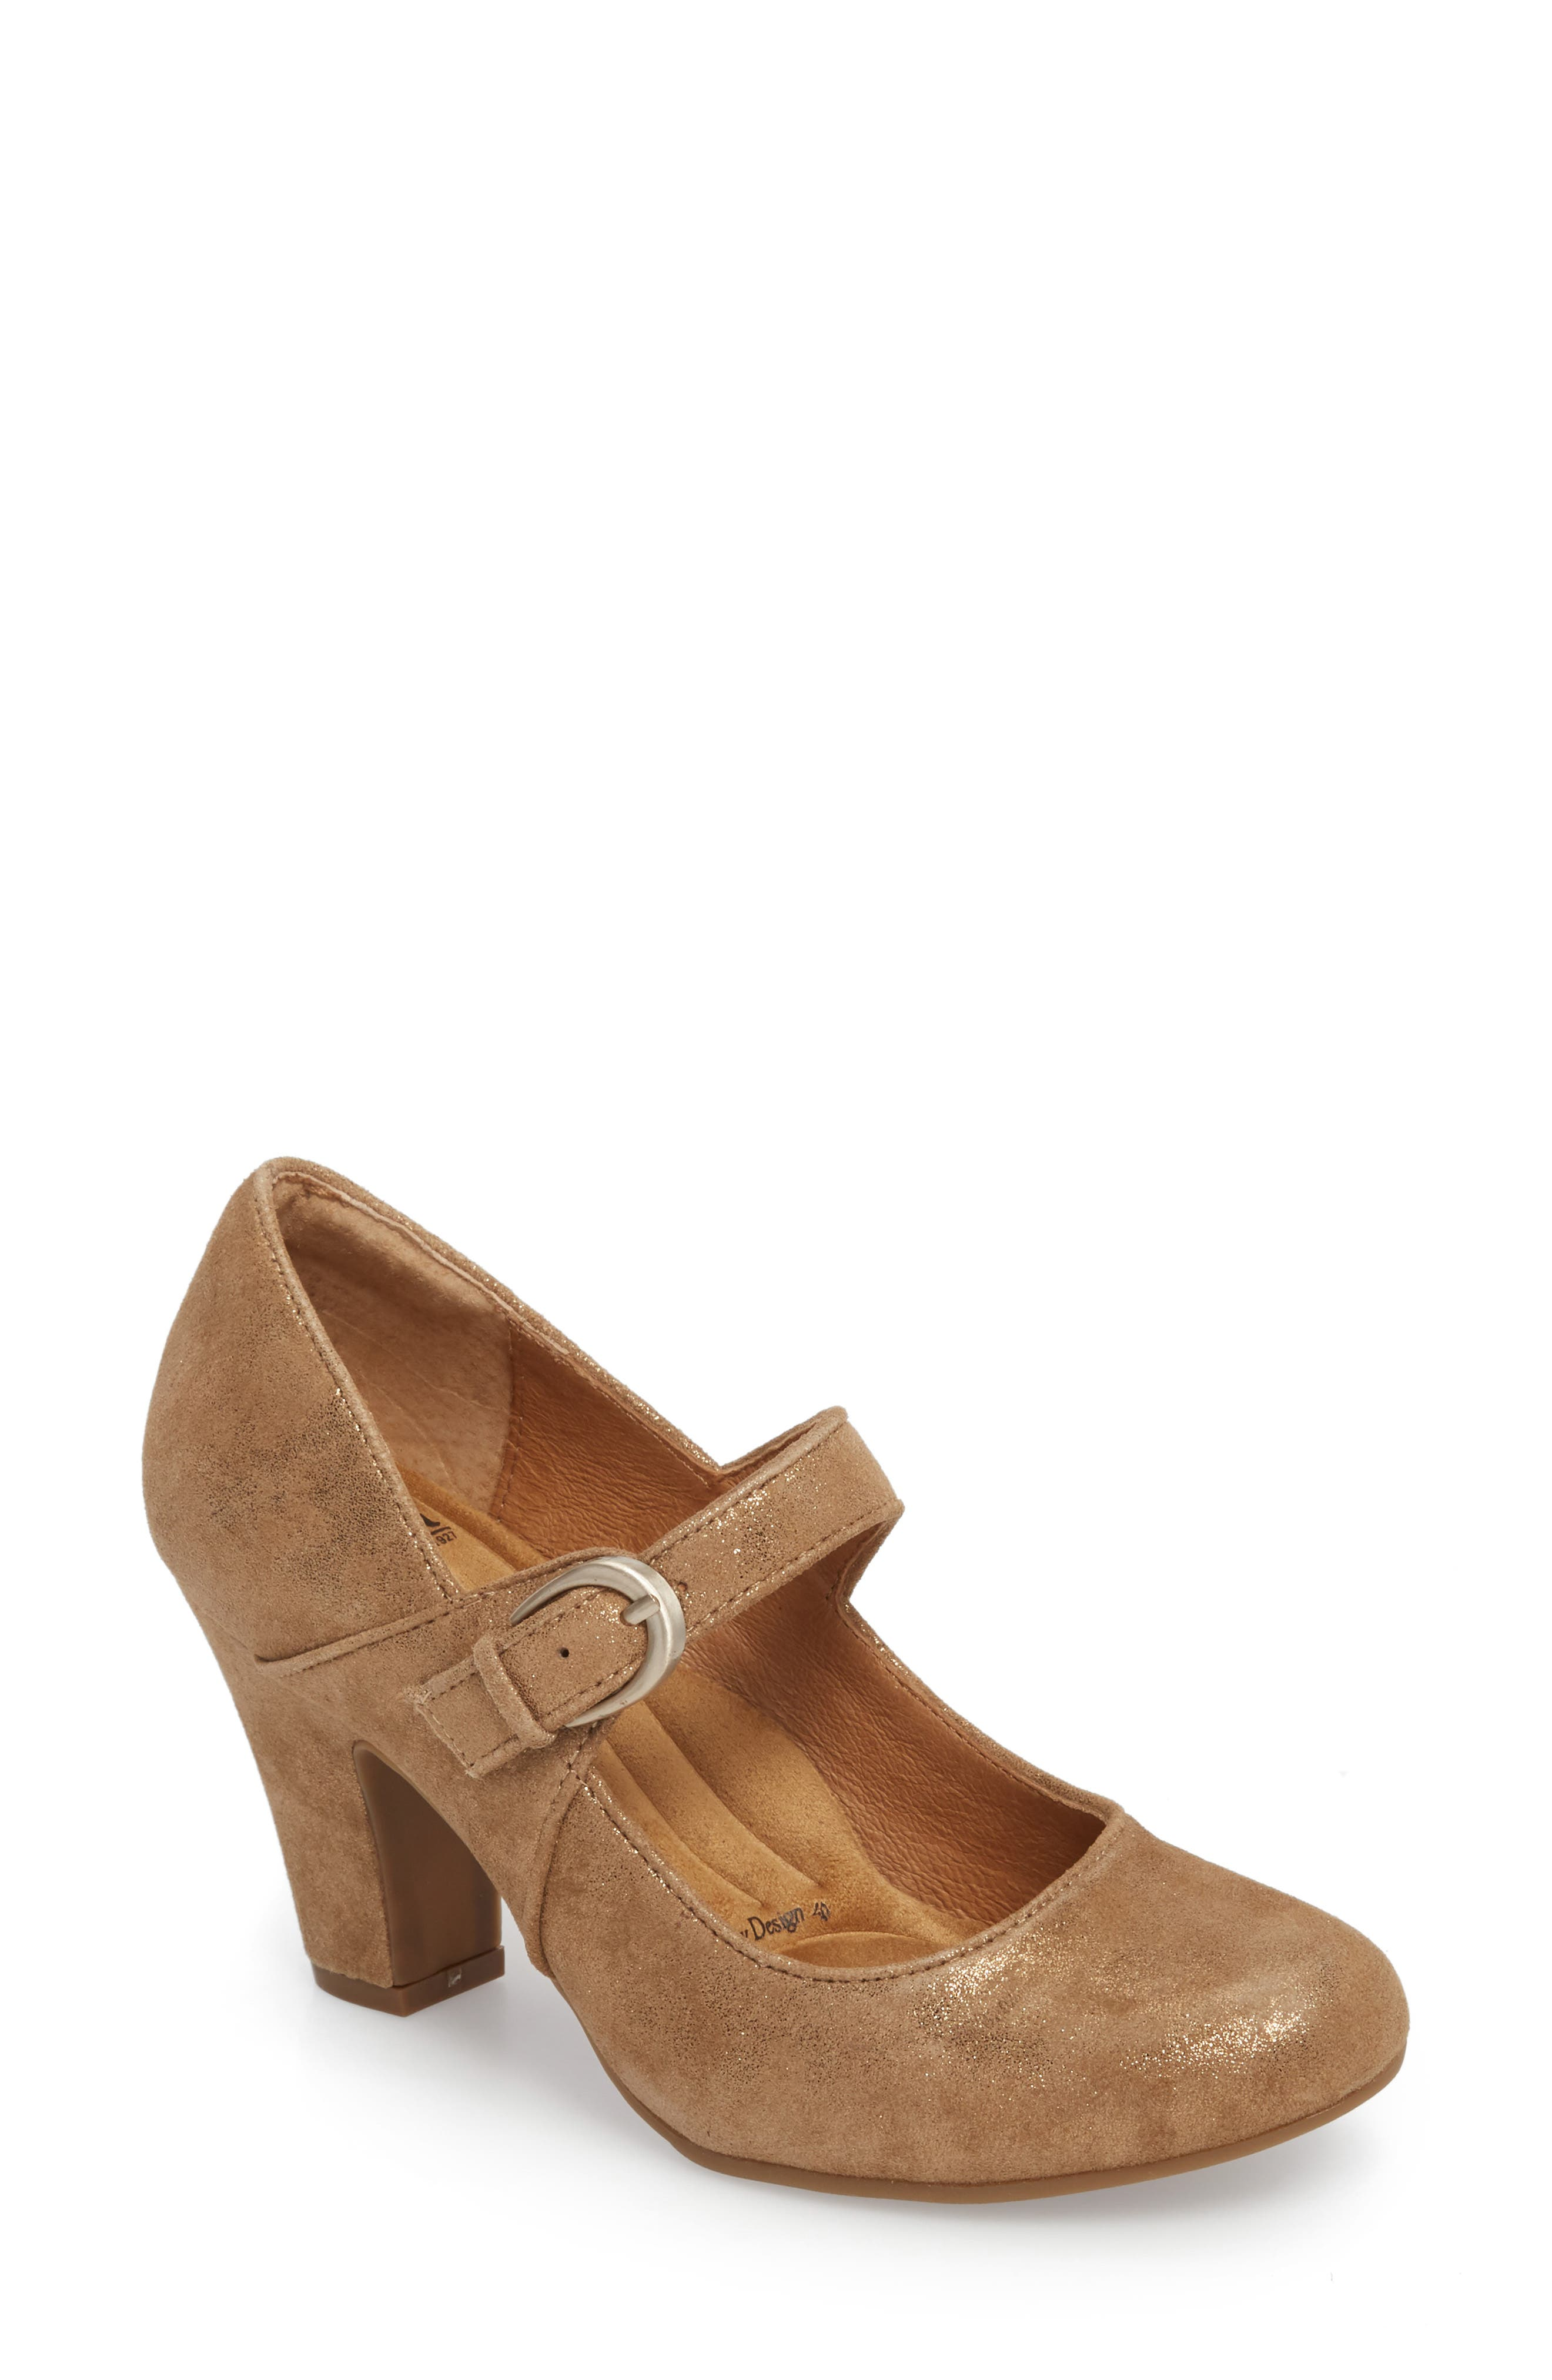 SÖFFT, 'Miranda' Mary Jane Pump, Main thumbnail 1, color, GOLD DISTRESSED FOIL SUEDE